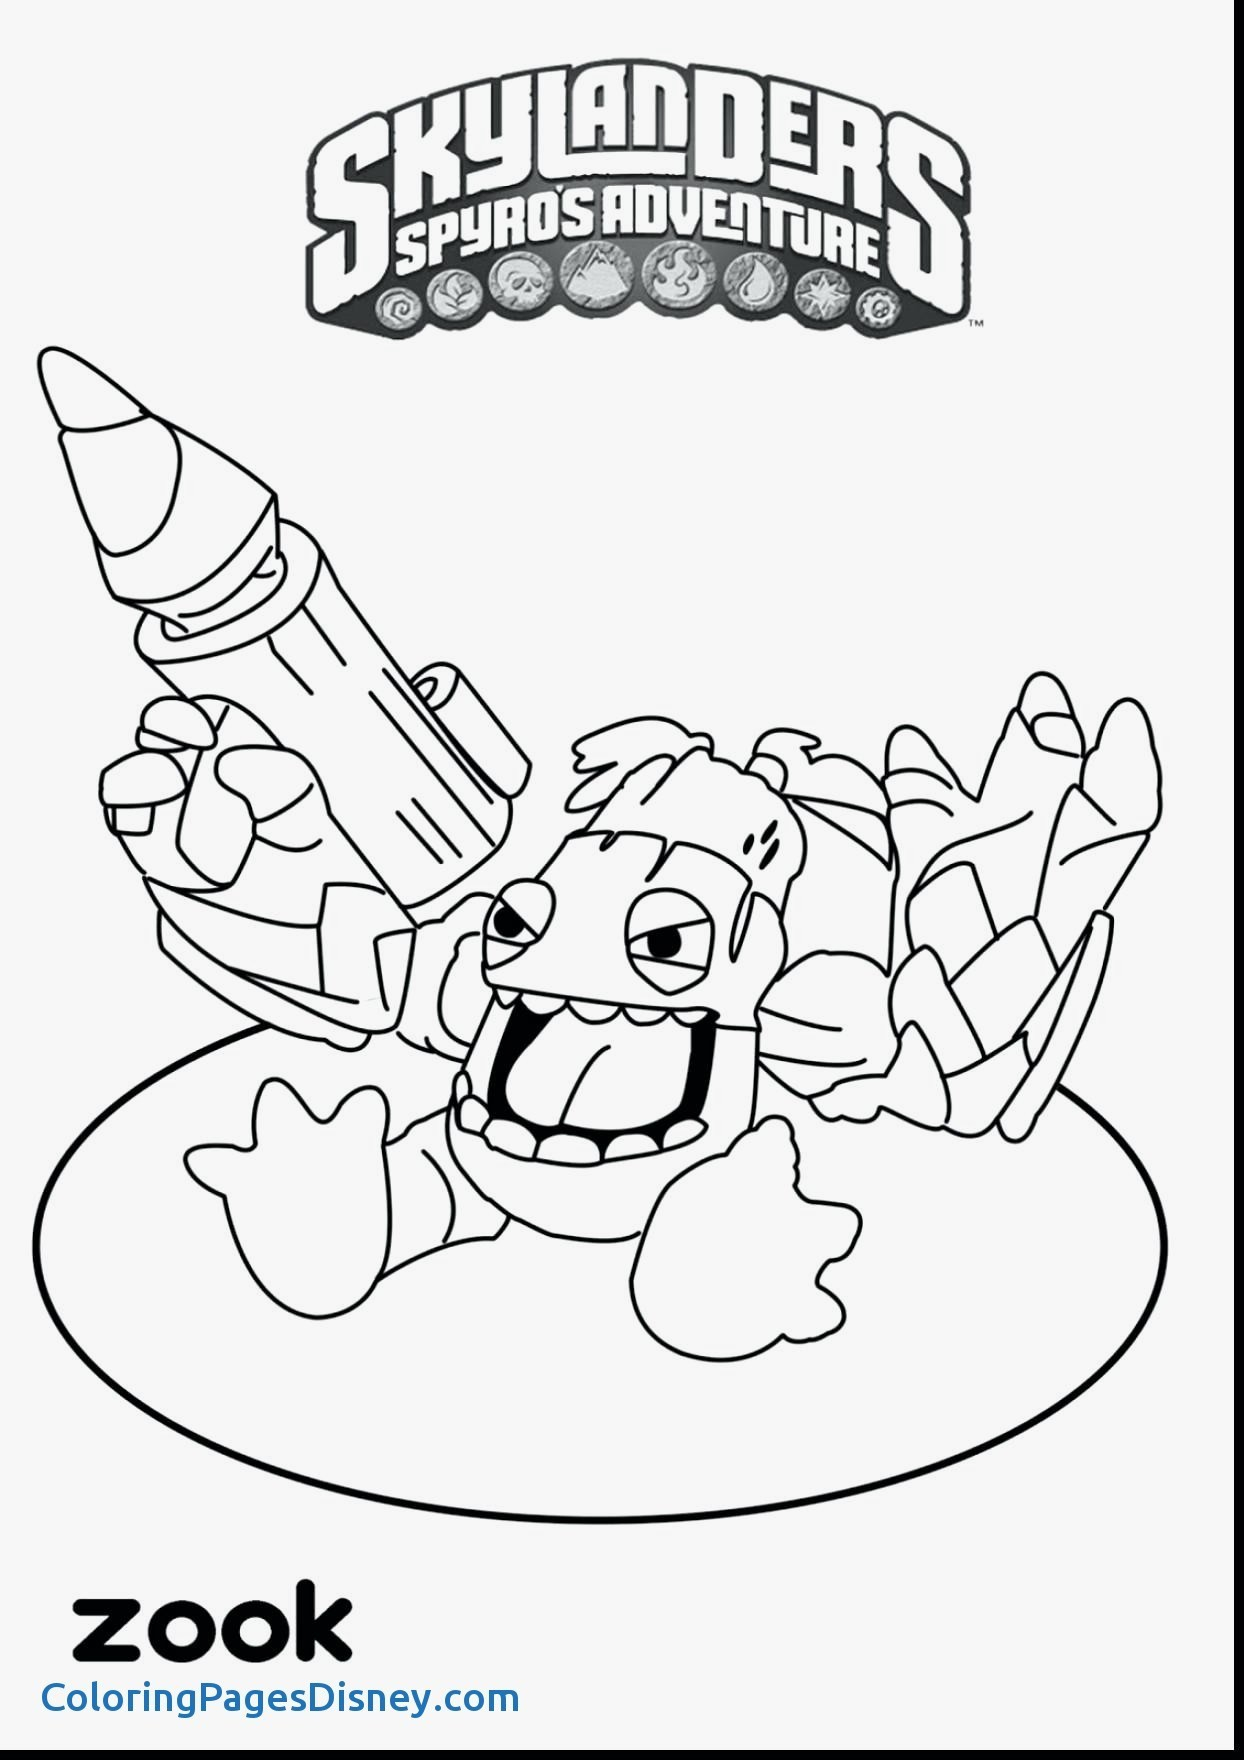 Captain America Winter Soldier Coloring Pages Captain America Winter Soldier Coloring Pages Luxury Captain America